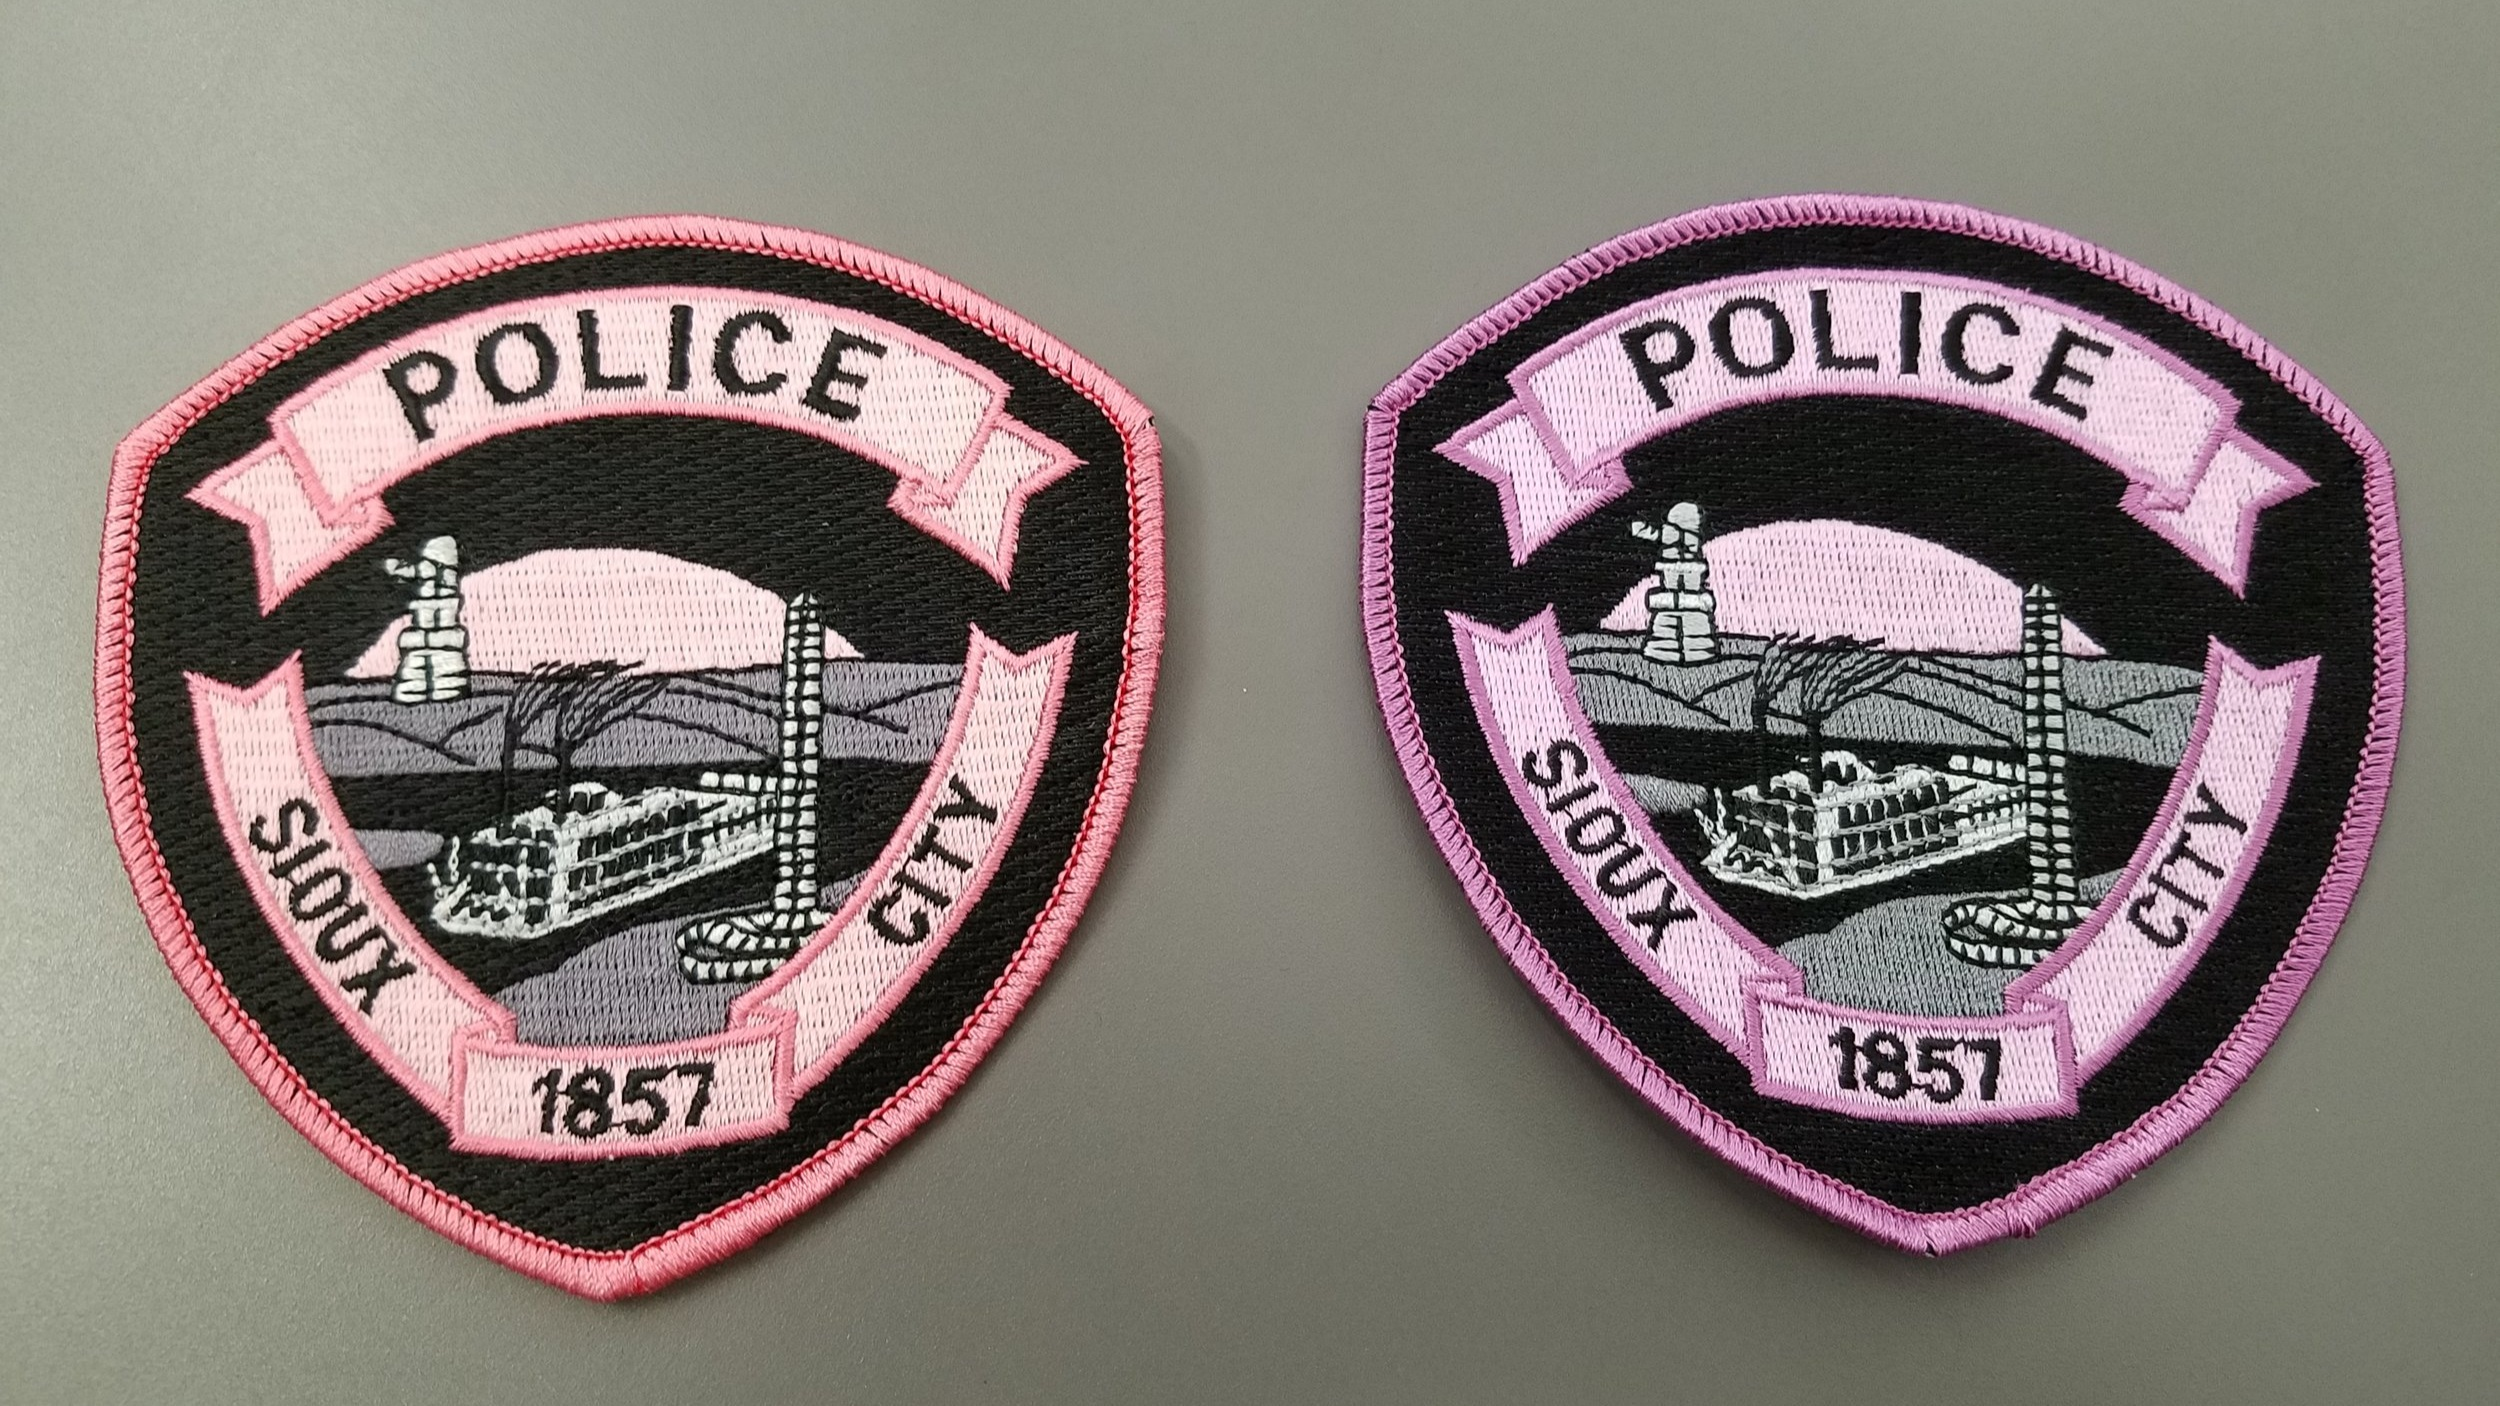 There is a light pink (left) and dark pink (right) version of the patch